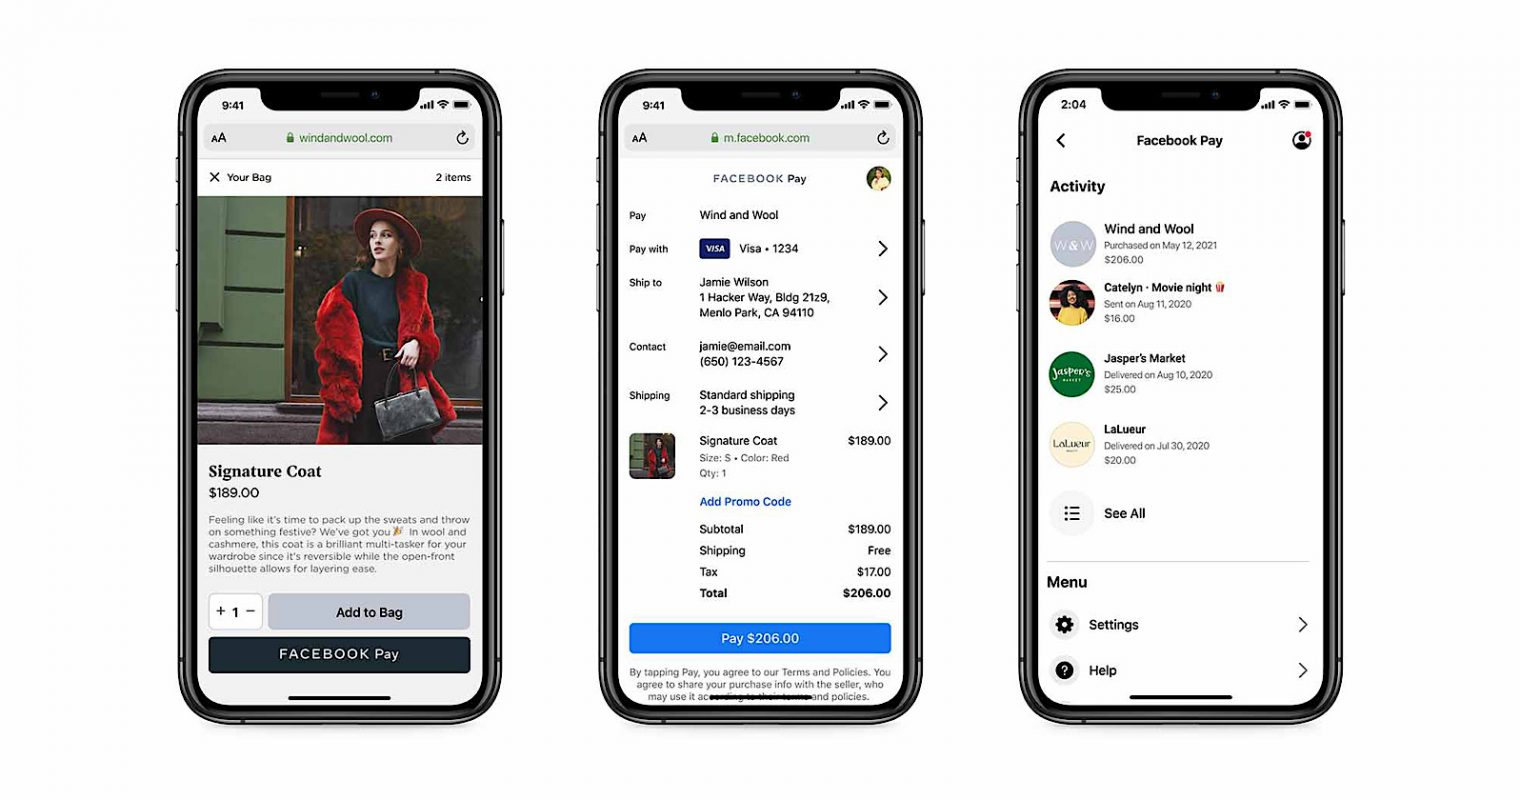 Facebook Pay Rolling Out to Shopify Sites in August